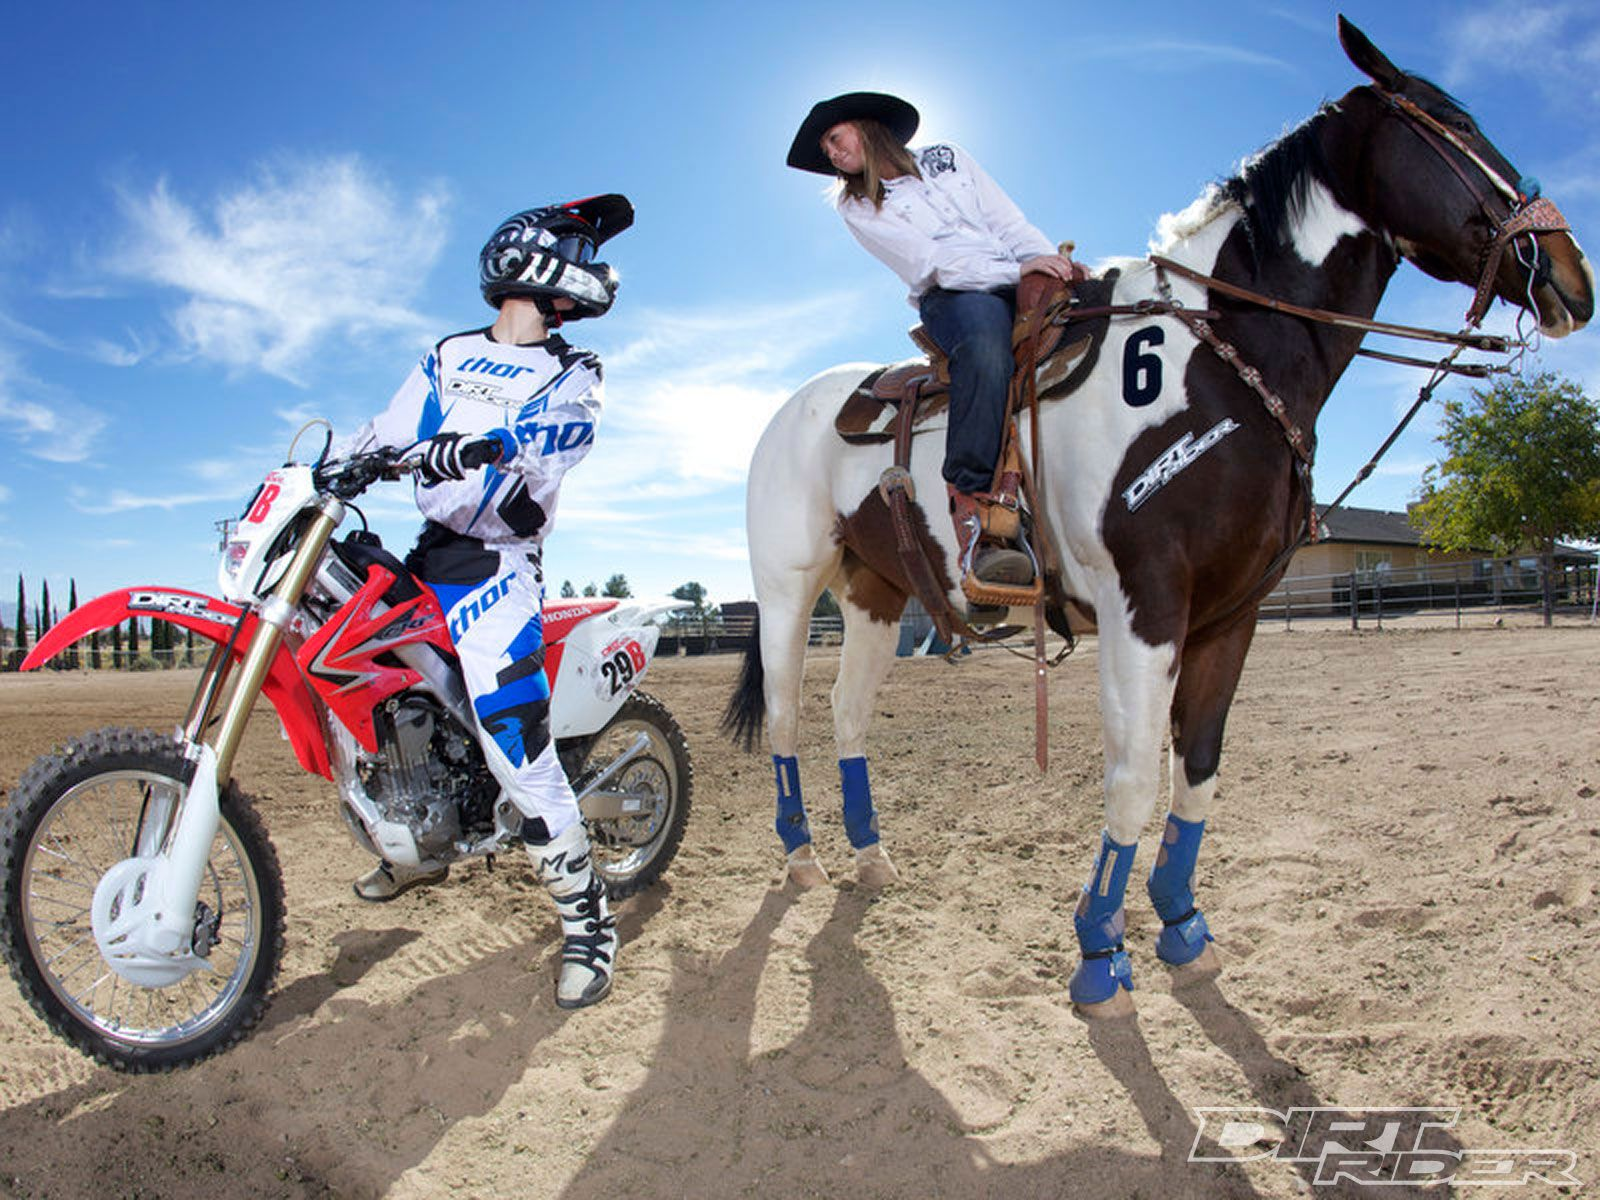 Bike Vs Horse Bike Wins Again Dirt Rider Magazine With